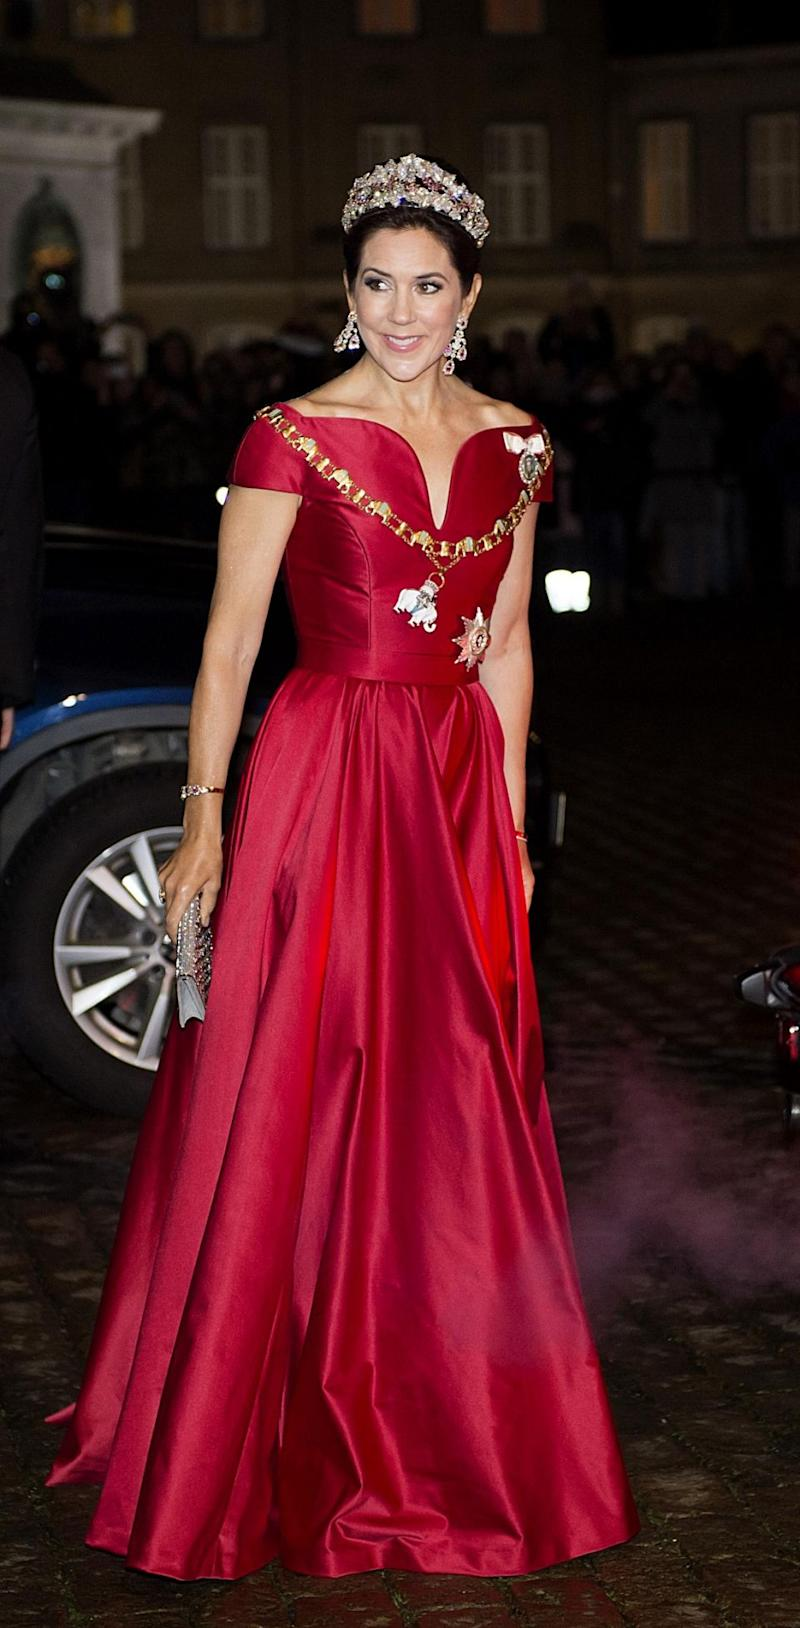 Princess Mary has stunned in a red gown at a Danish New Year's Eve party. Photo: Australscope